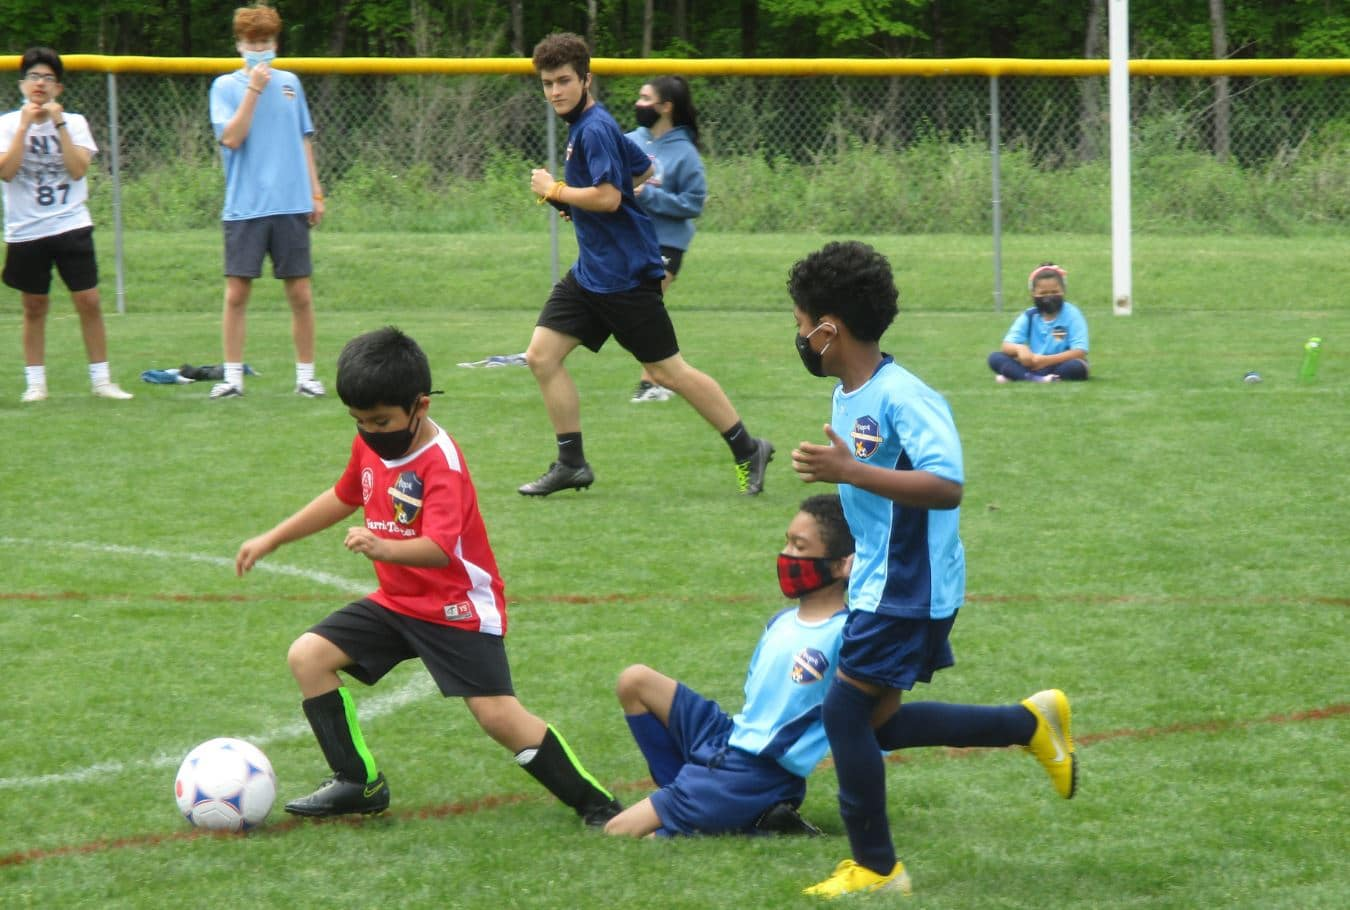 Hope Soccer U8 team playing a scrimmage.